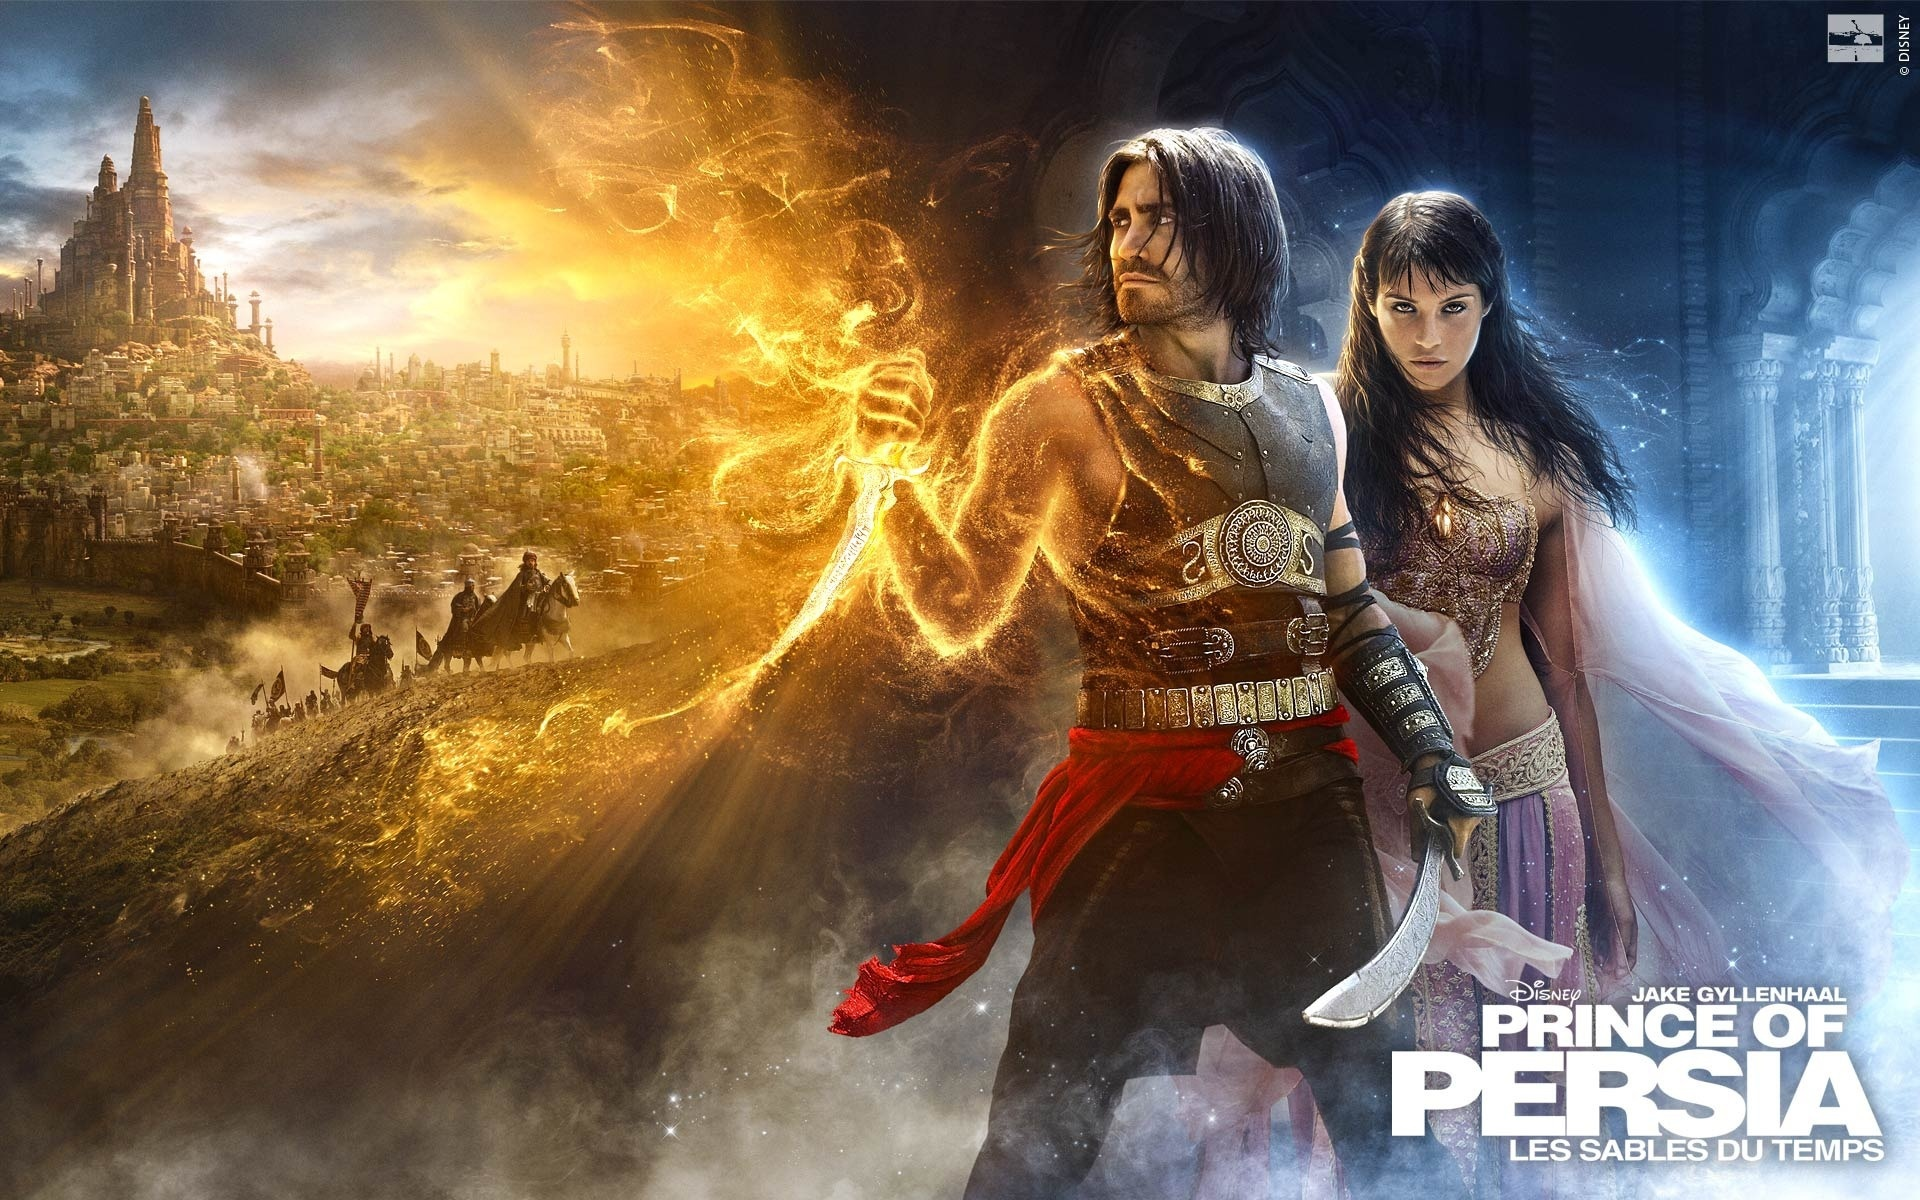 Prince Of Persia Sands Of Time Wallpapers In Jpg Format For Free